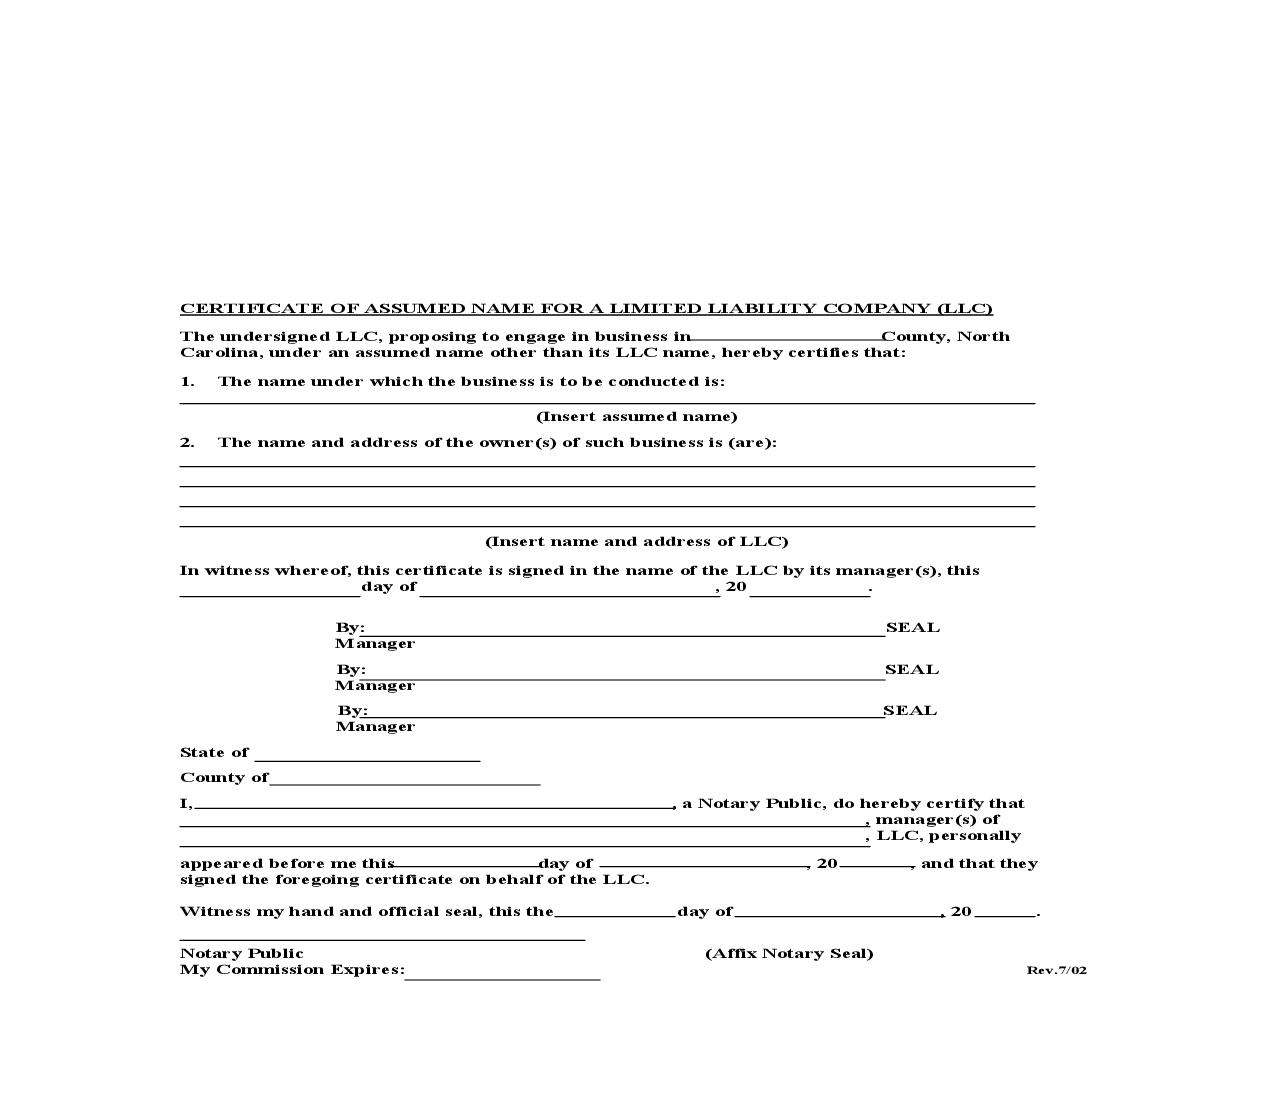 Certificate Of Assumed Name For Limited Liability Company      North Carolina